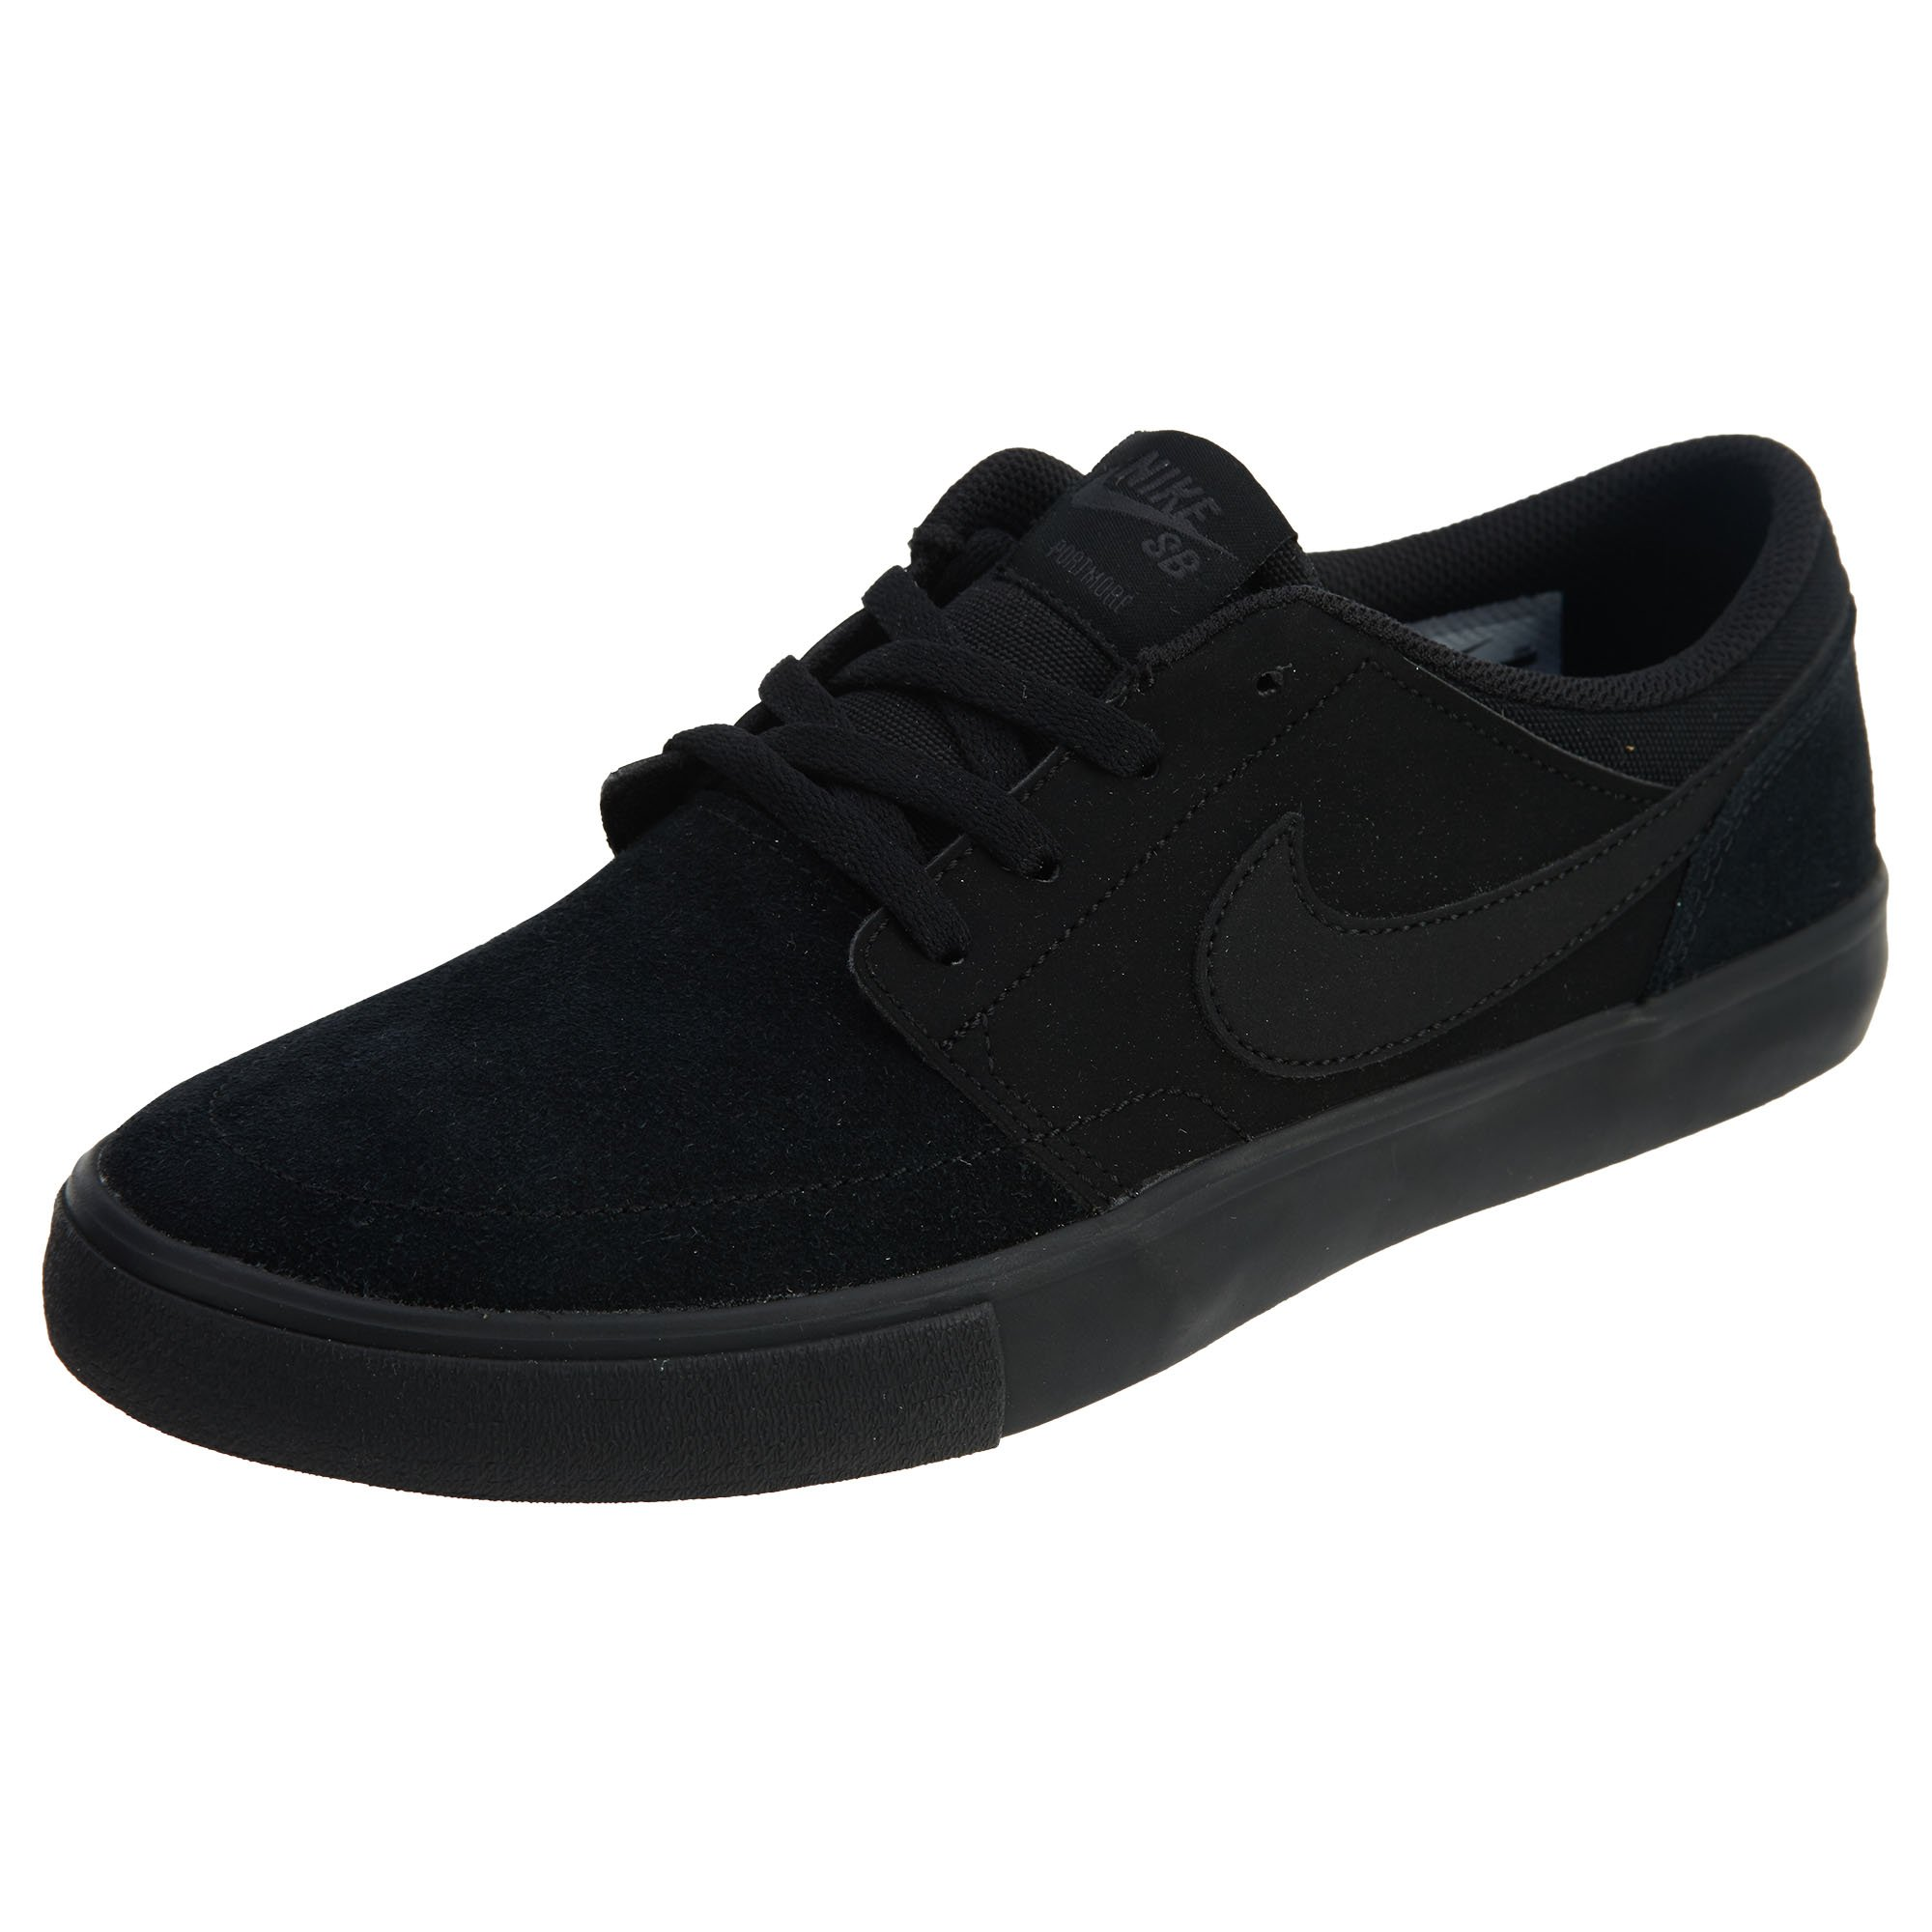 735620ca1ba384 Galleon - Nike 880266-002: SB Portmore II Solar Black/Anthracite  Skateboarding Sneakers (8.5 D(M) US Men)